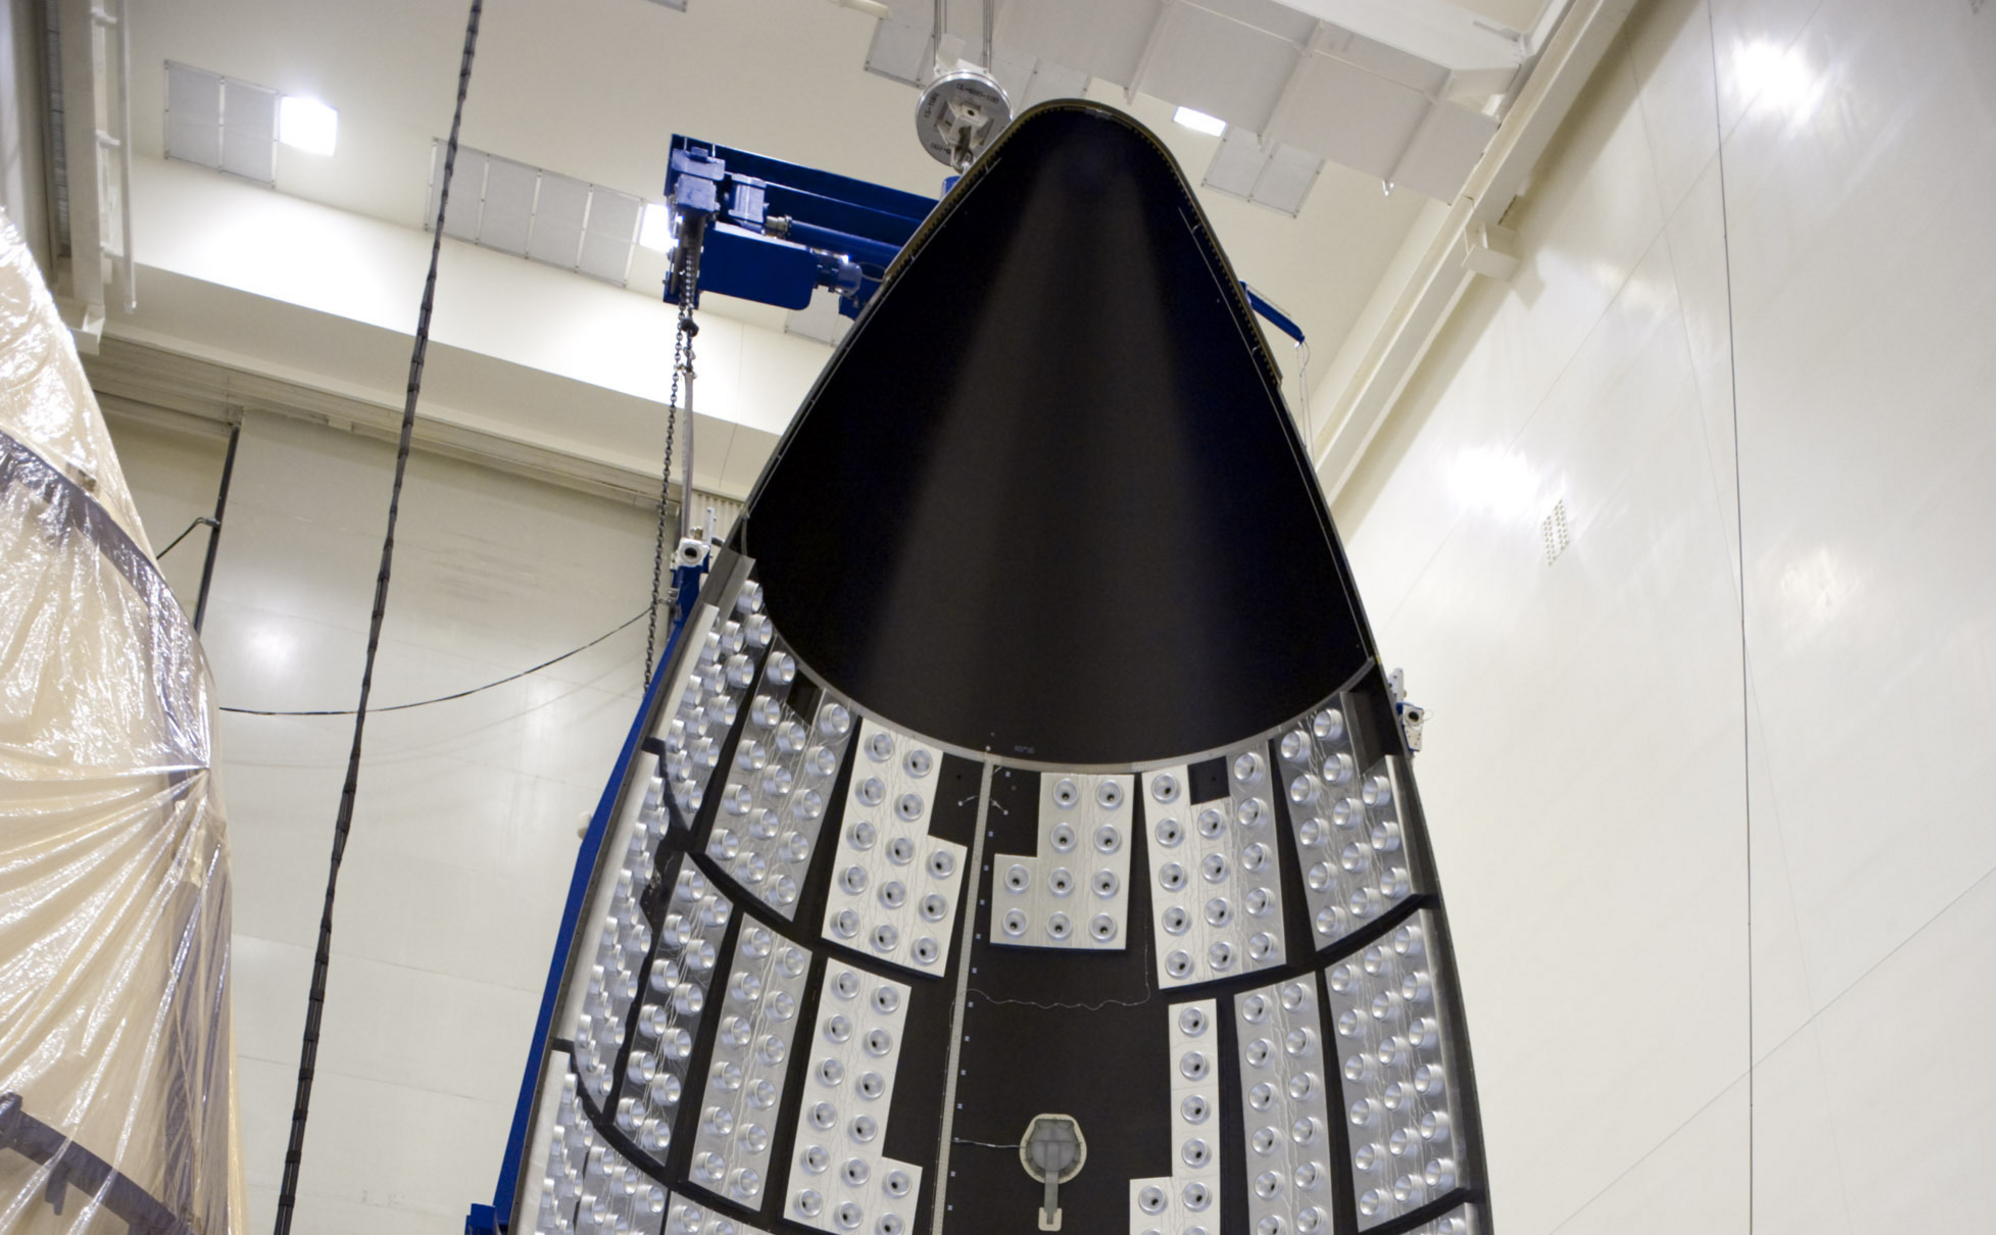 In the Payload Hazardous Servicing Facility at NASA's Kennedy Space Center in Florida, a section of the Atlas V payload fairing for NASA's Mars Science Laboratory (MSL) mission hangs vertically from the ceiling.